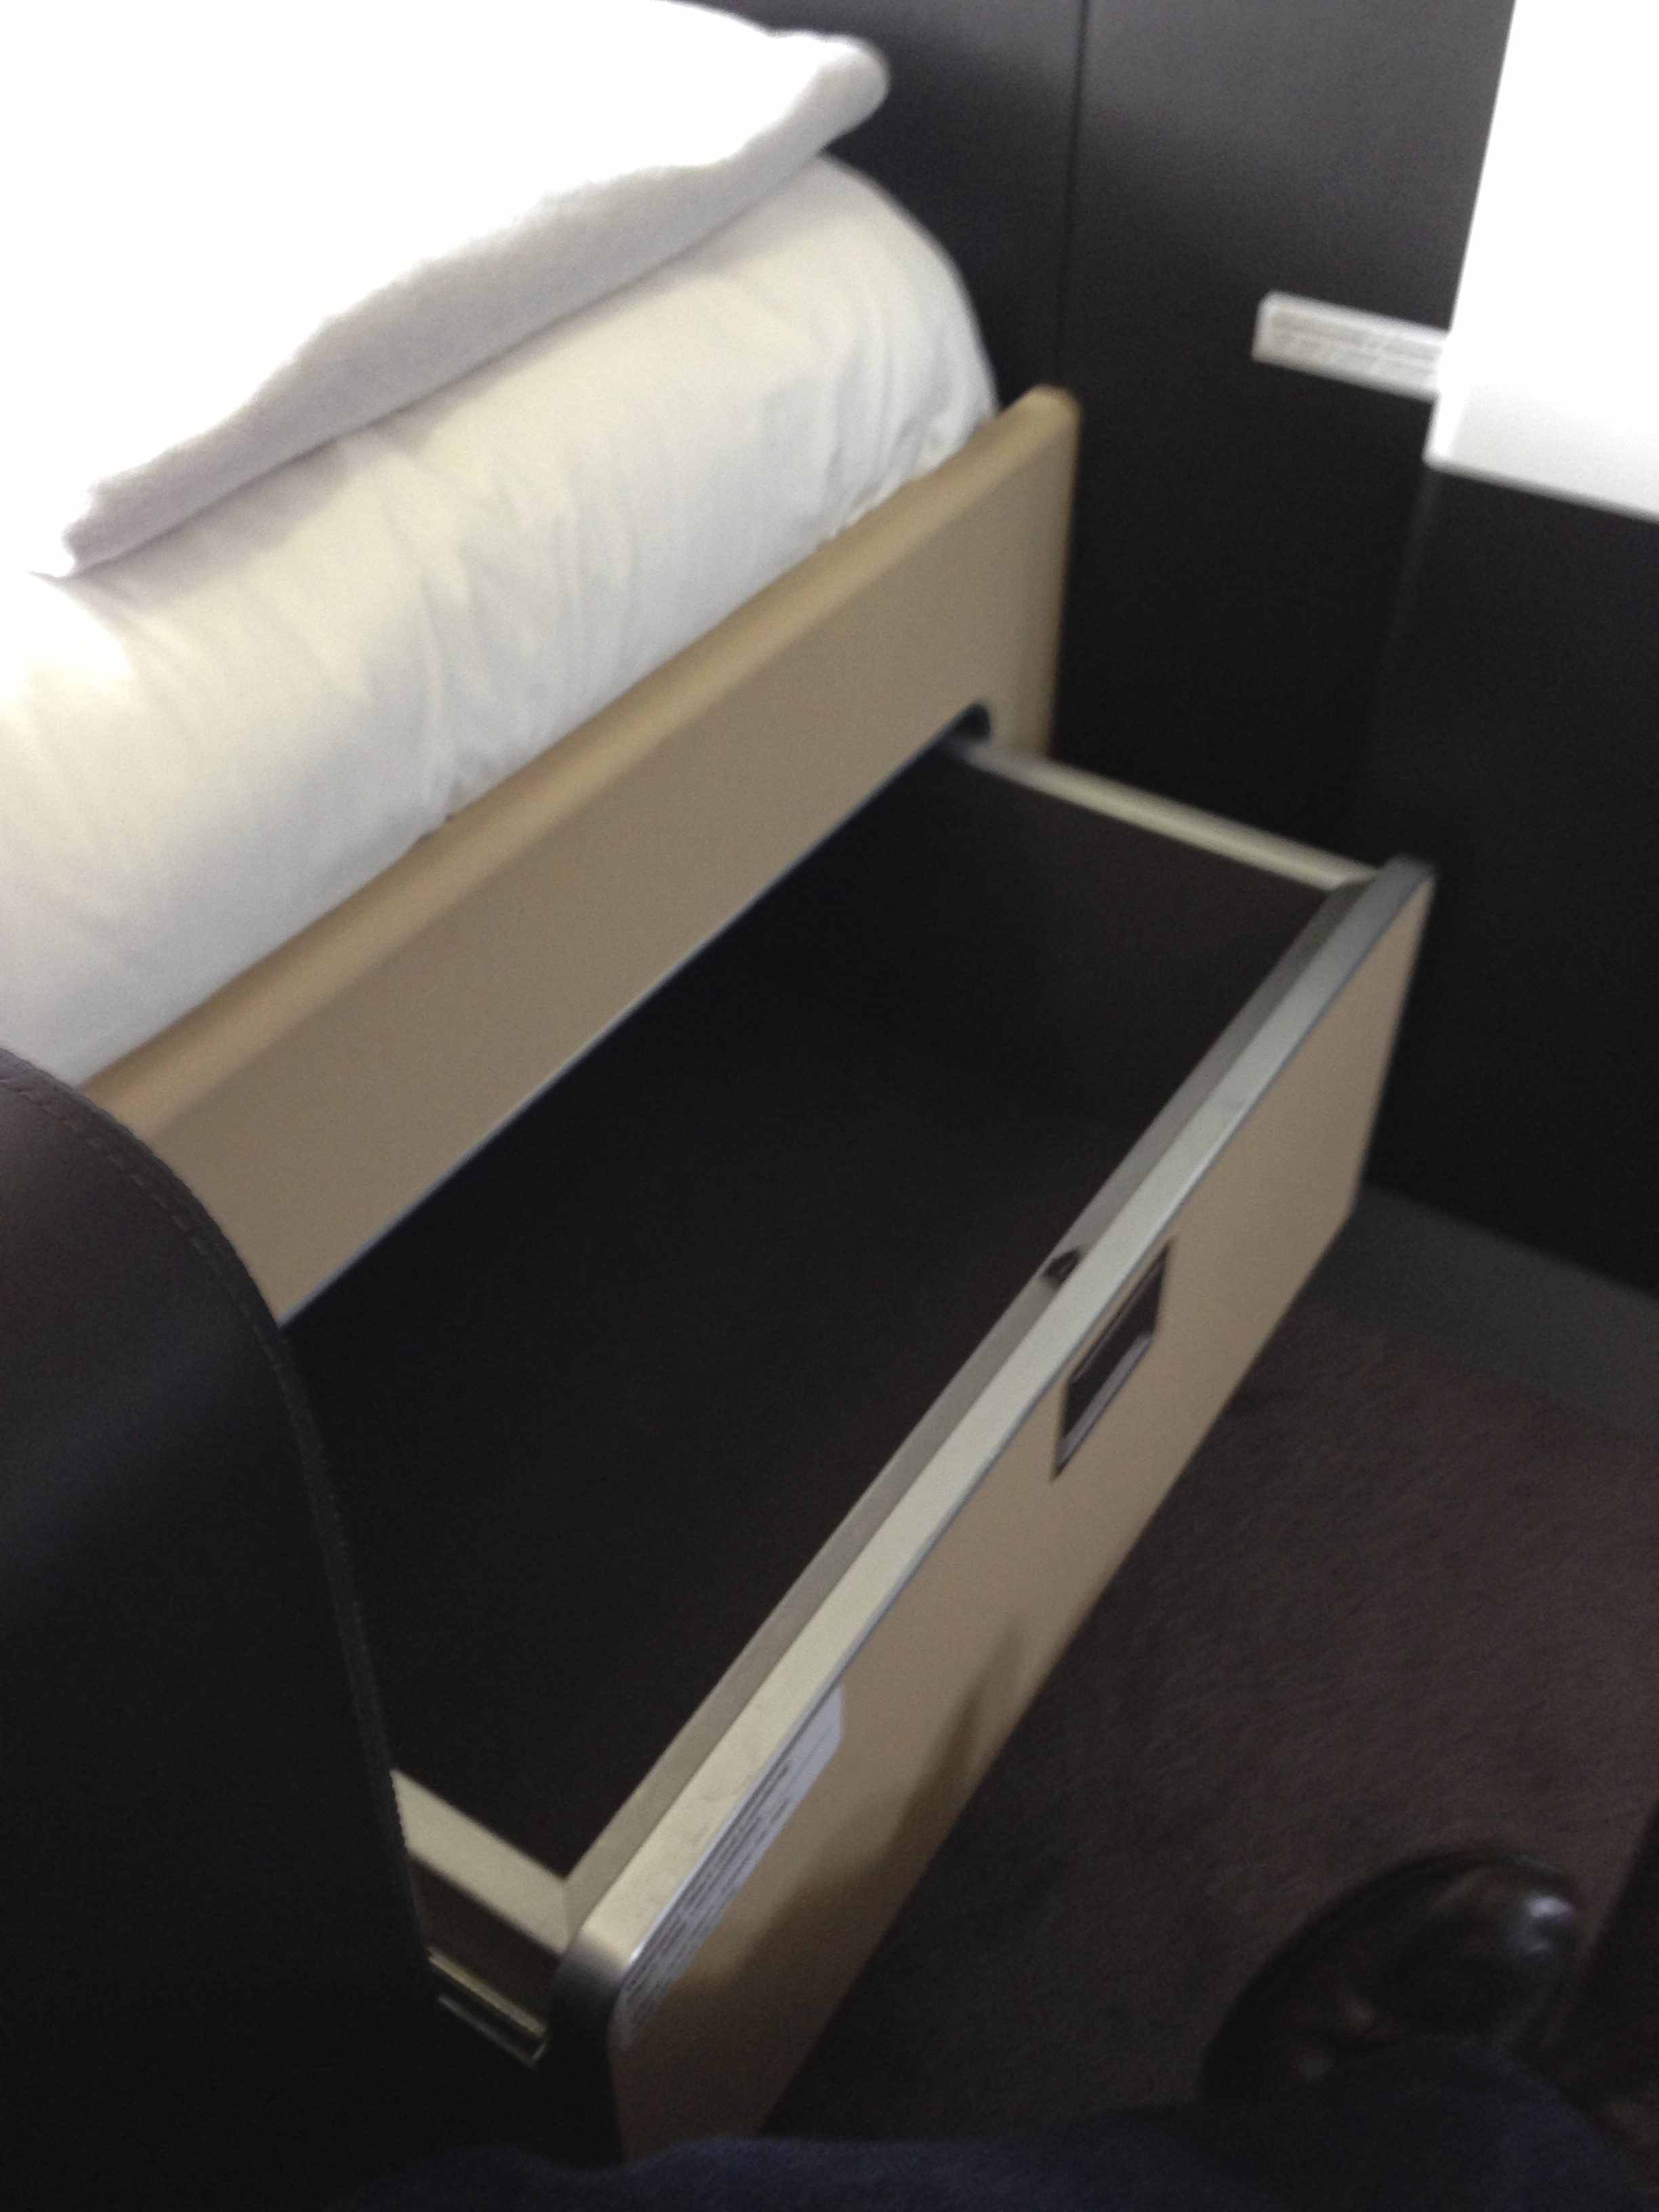 Lufthansa First Class Storage Compartment